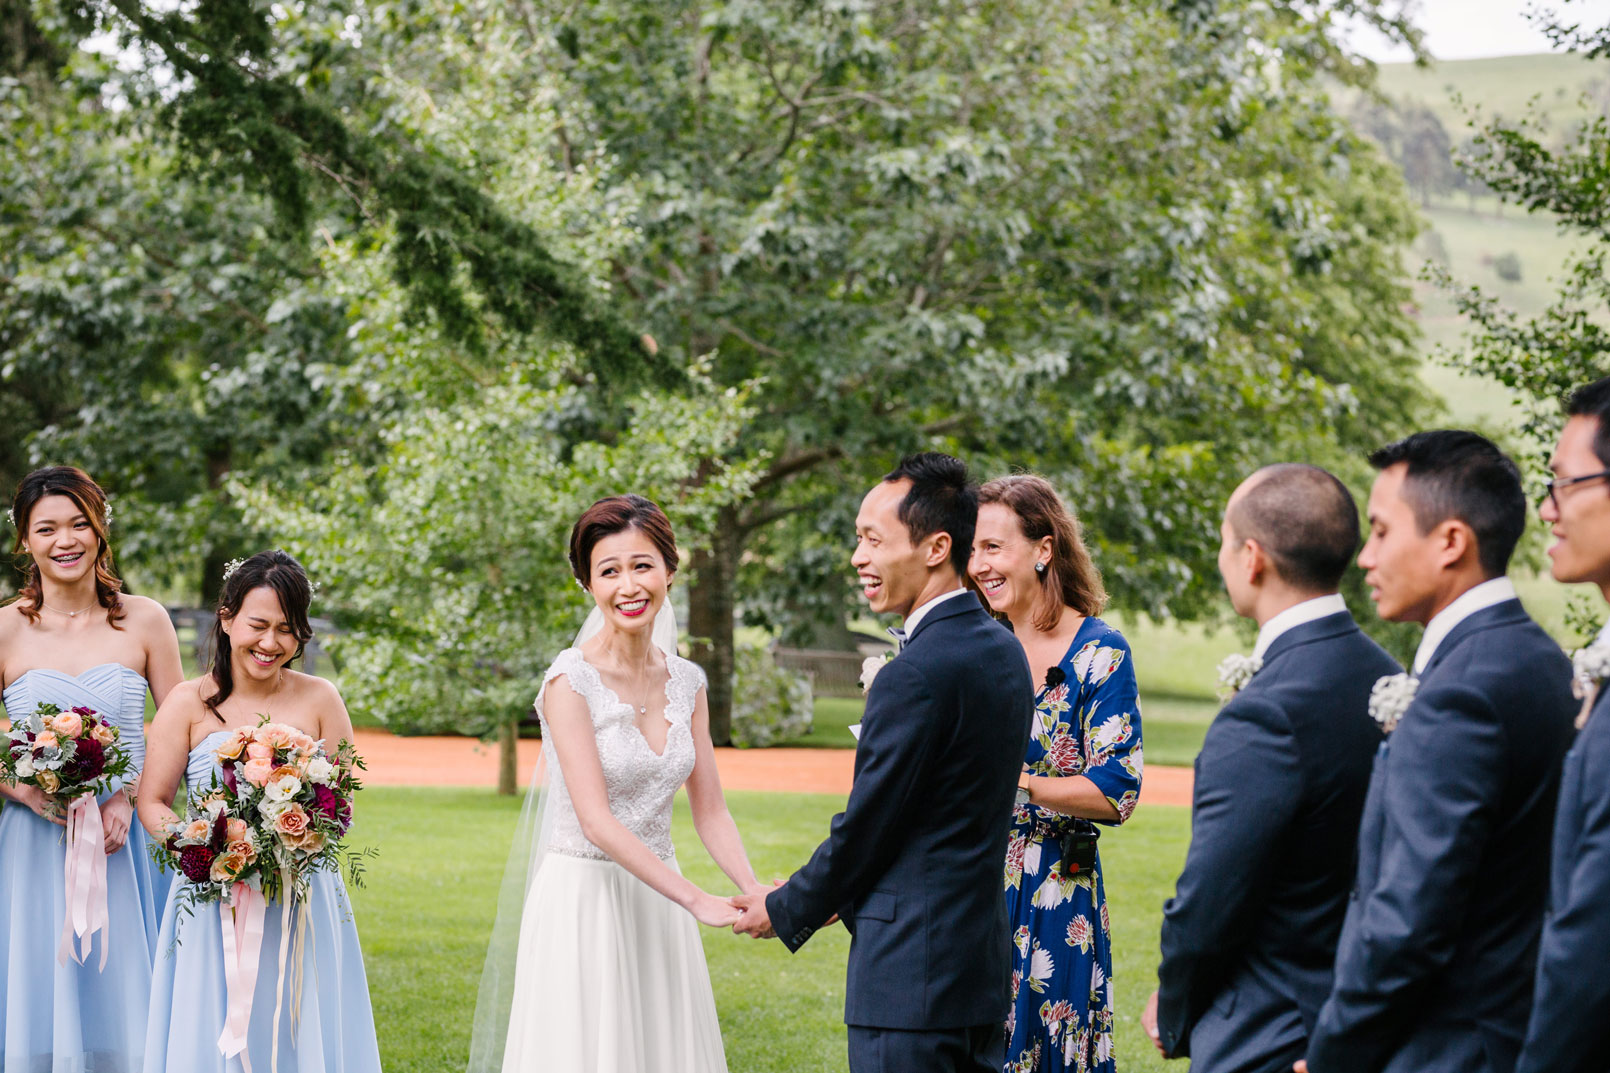 Bride and Groom being married in garden with wedding party and marrige celebrant